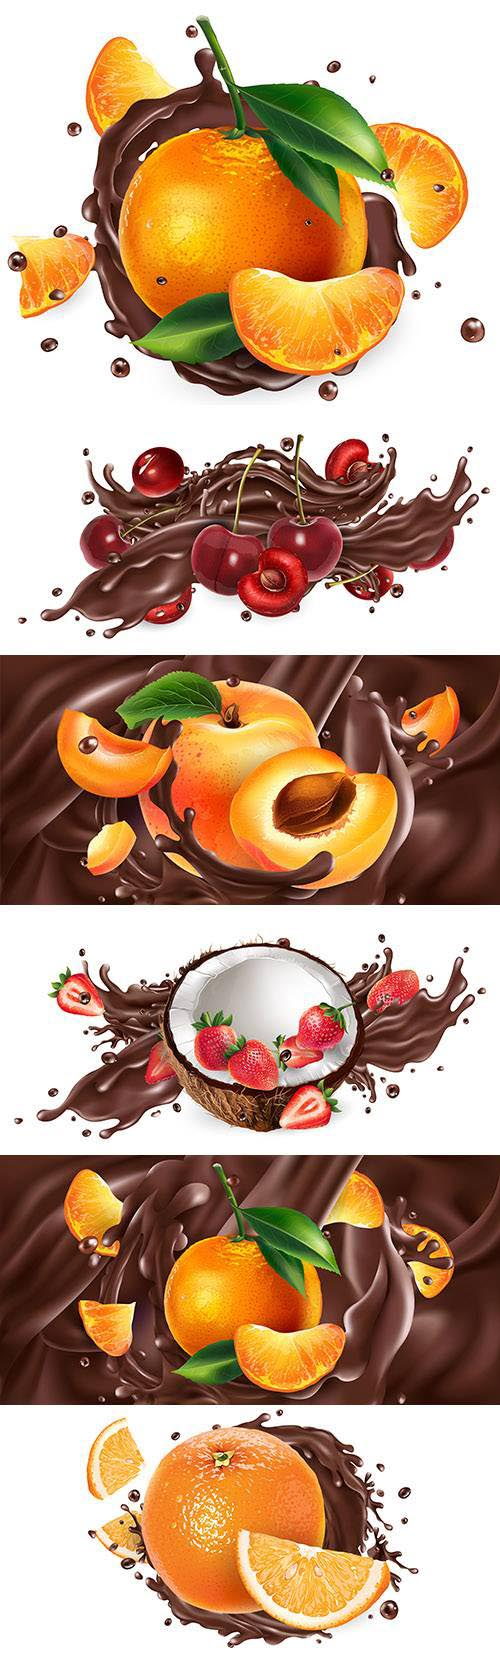 Whole and chopped fruit in chocolate splash realistic illustrations 2